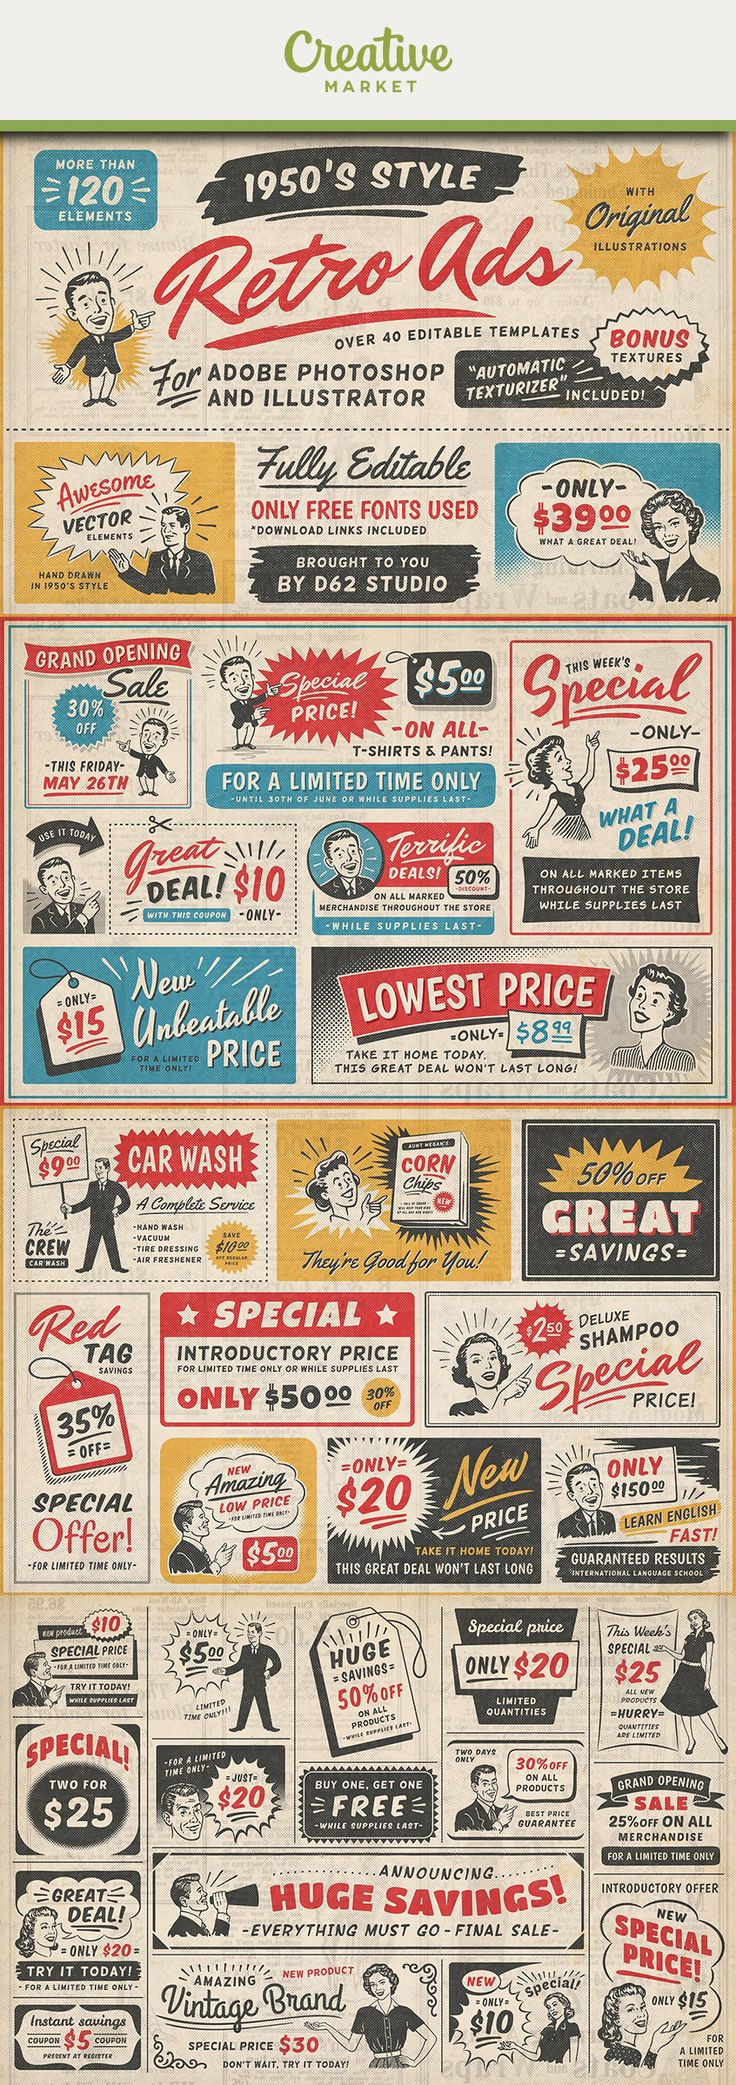 """Ad: 1950s style retro ad templates featuringORIGINALillustrations with our """"Automatic Texturizer"""" Photoshop effect preset and bonus textures. Includes, Illustrator, Photoshop and PNG files. Easily editable with only free fonts used. For 39$ on Creative Market"""